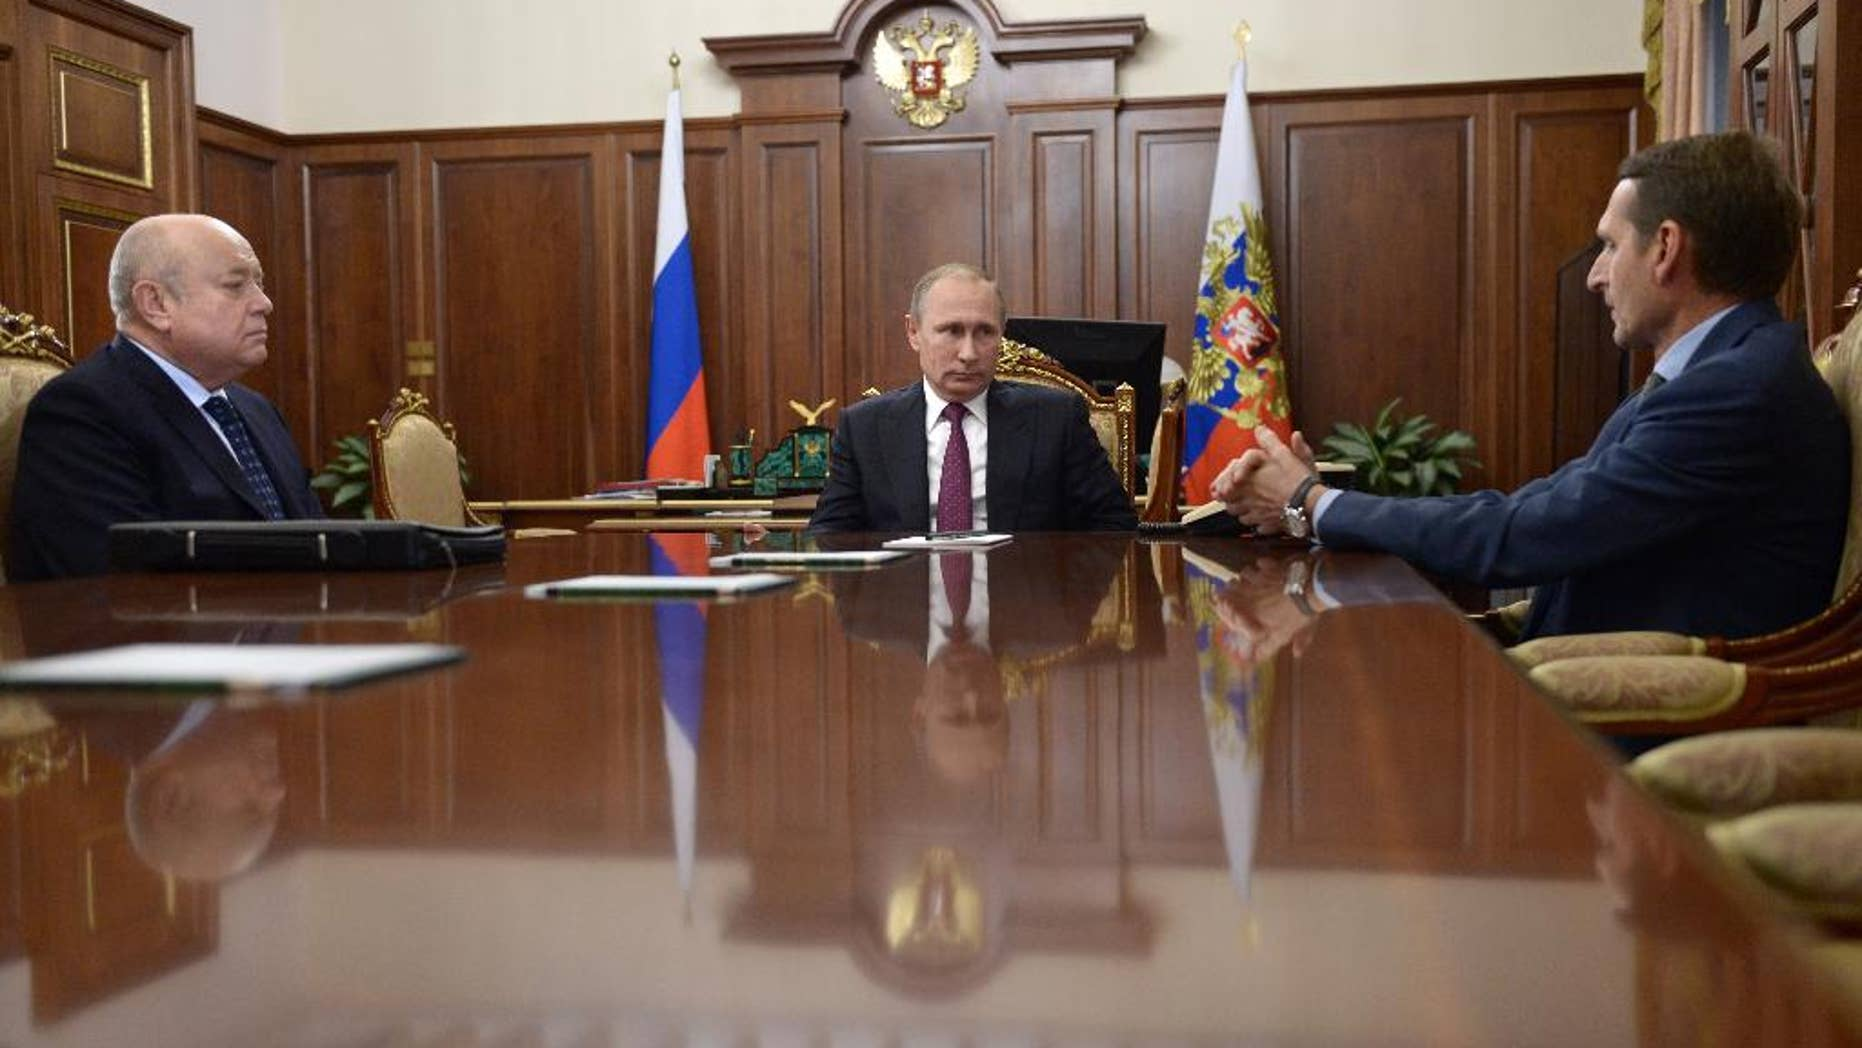 From left, Foreign Intelligence Service head Mikhail Fradkov, Russian President Vladimir Putin, and parliament speaker Sergei Naryshkin meet in Moscow's Kremlin Russia, Thursday, Sept. 22, 2016. Putin offered Fradkov a post of a head of board of directors of the Russian railways and Naryshkin a post of a head of Foreign Intelligence Service. (Alexei Nikolsky/Sputnik, Kremlin Pool Photo via AP)